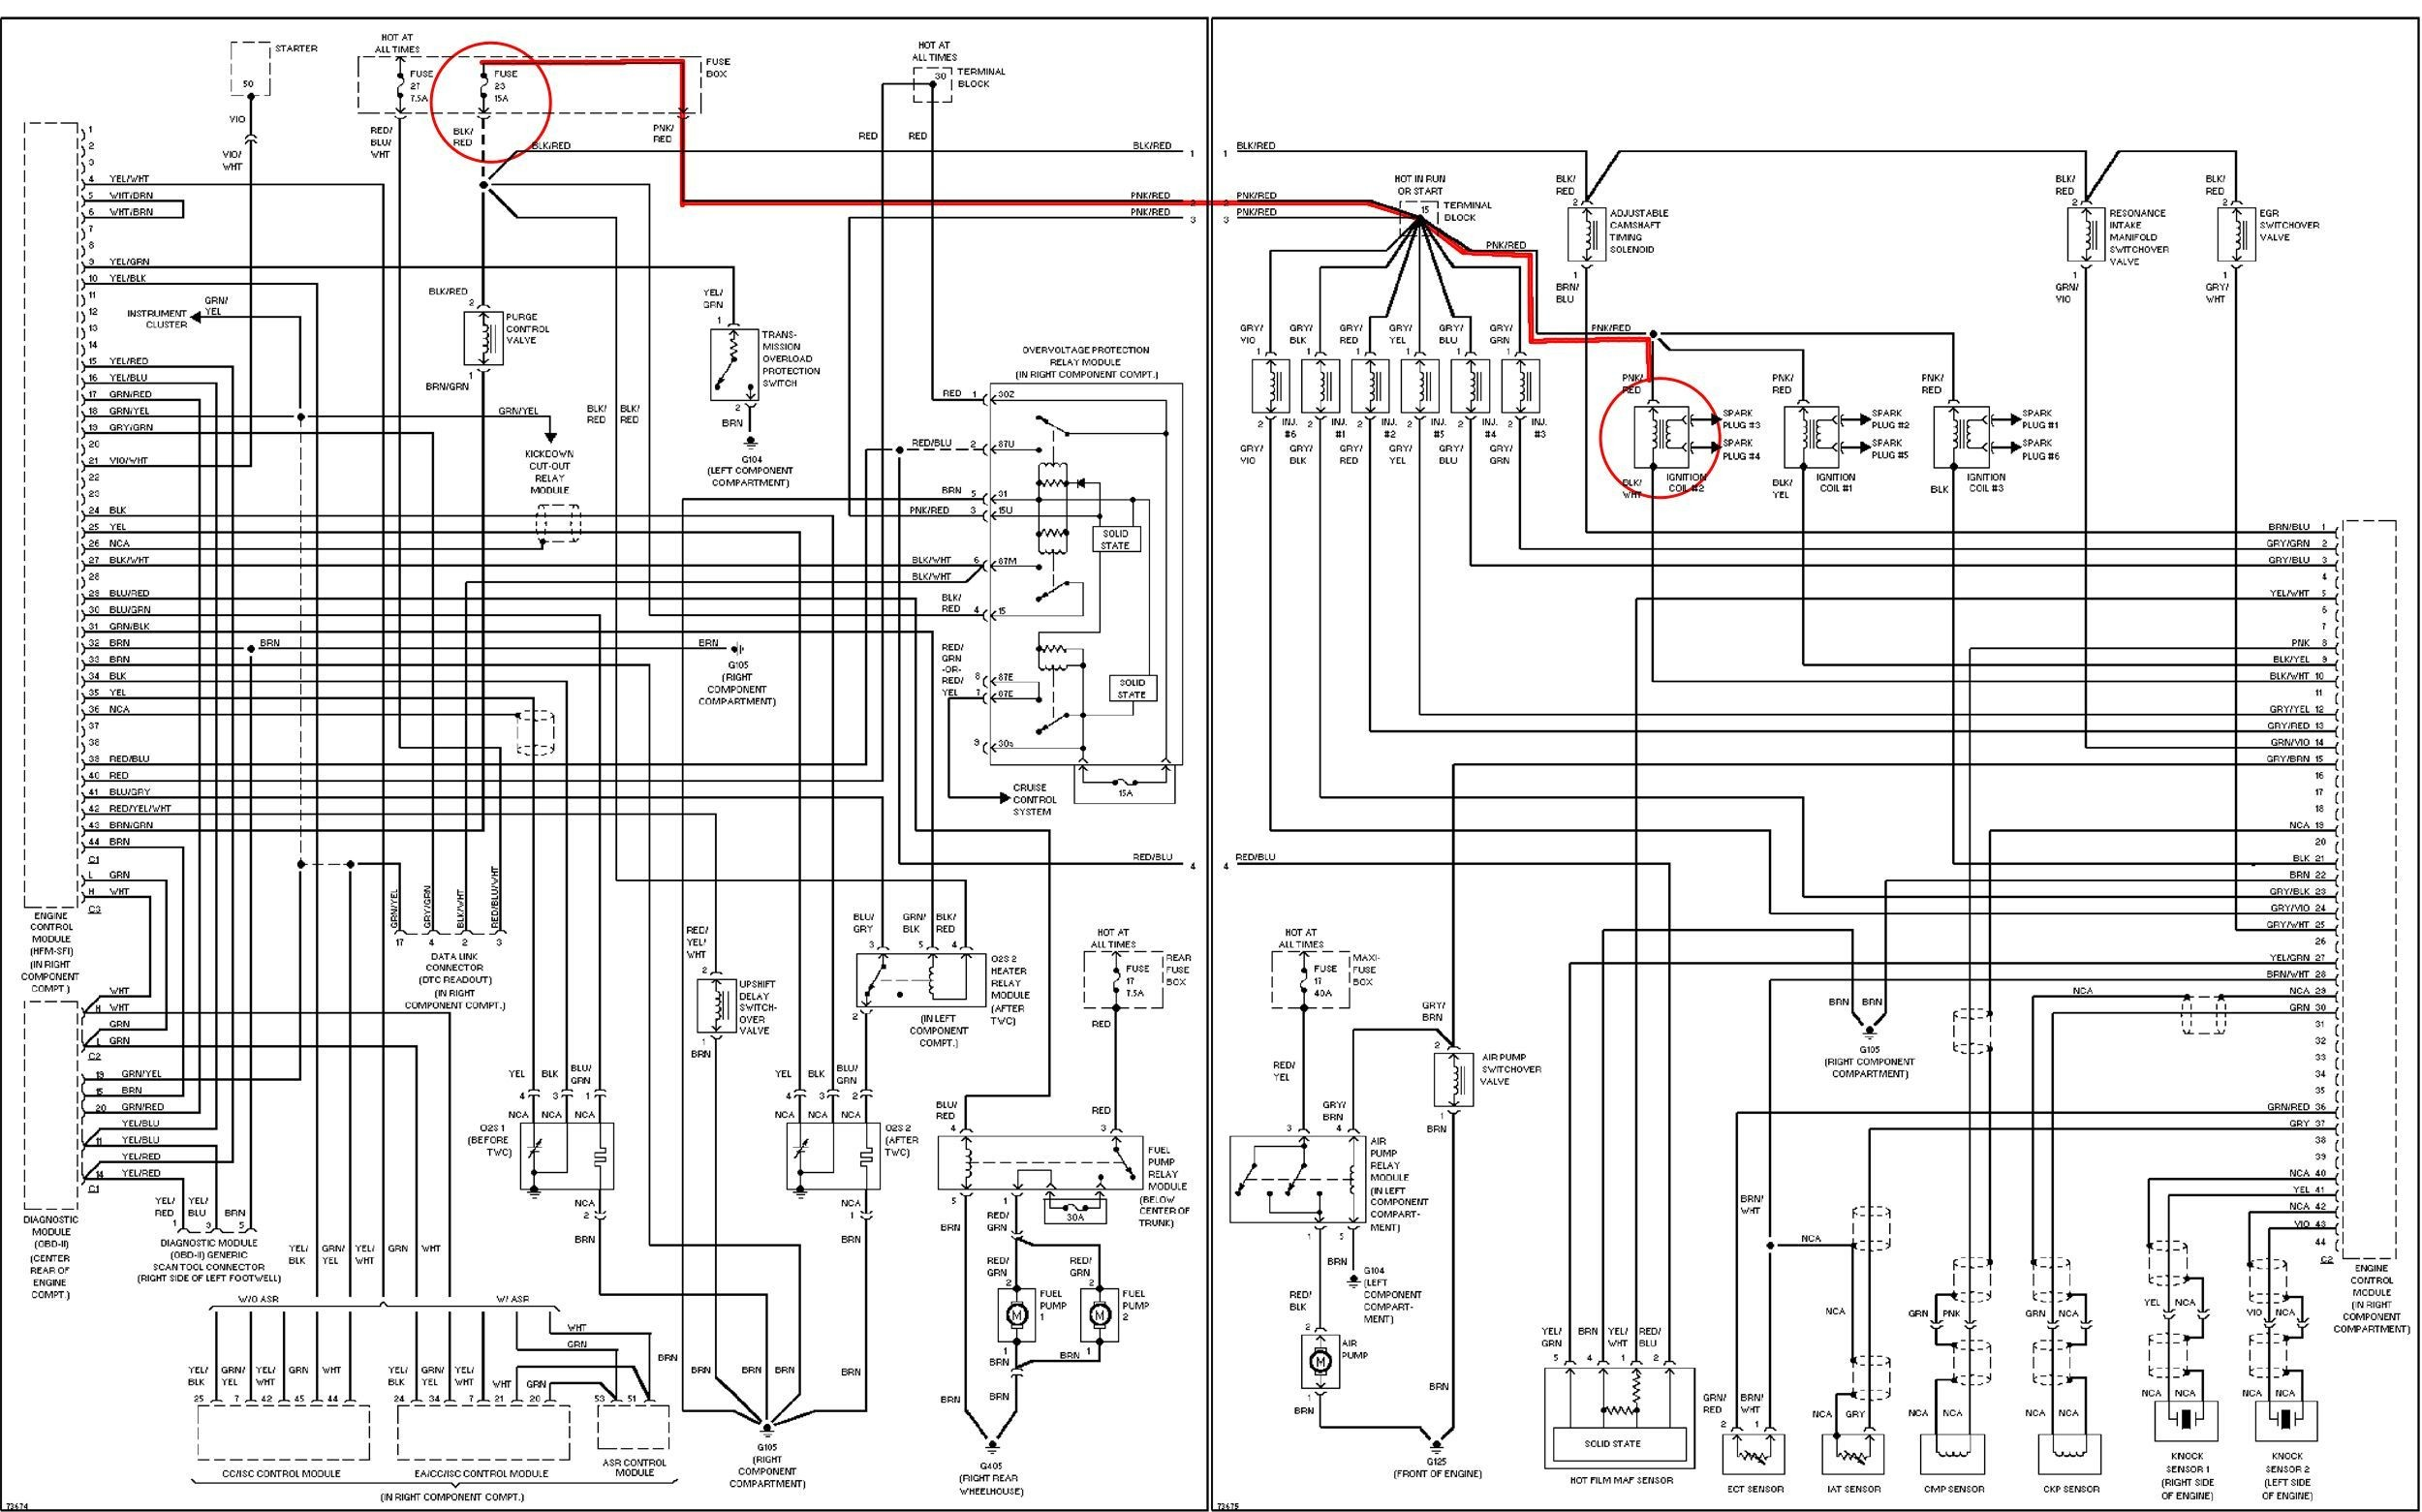 Mercedes Benz Engine Diagram Mercedes Benz Engine Schematics Trusted Wiring Diagrams • Of Mercedes Benz Engine Diagram Mercedes Benz Parts Diagram – Diagram Car Best Car Parts and